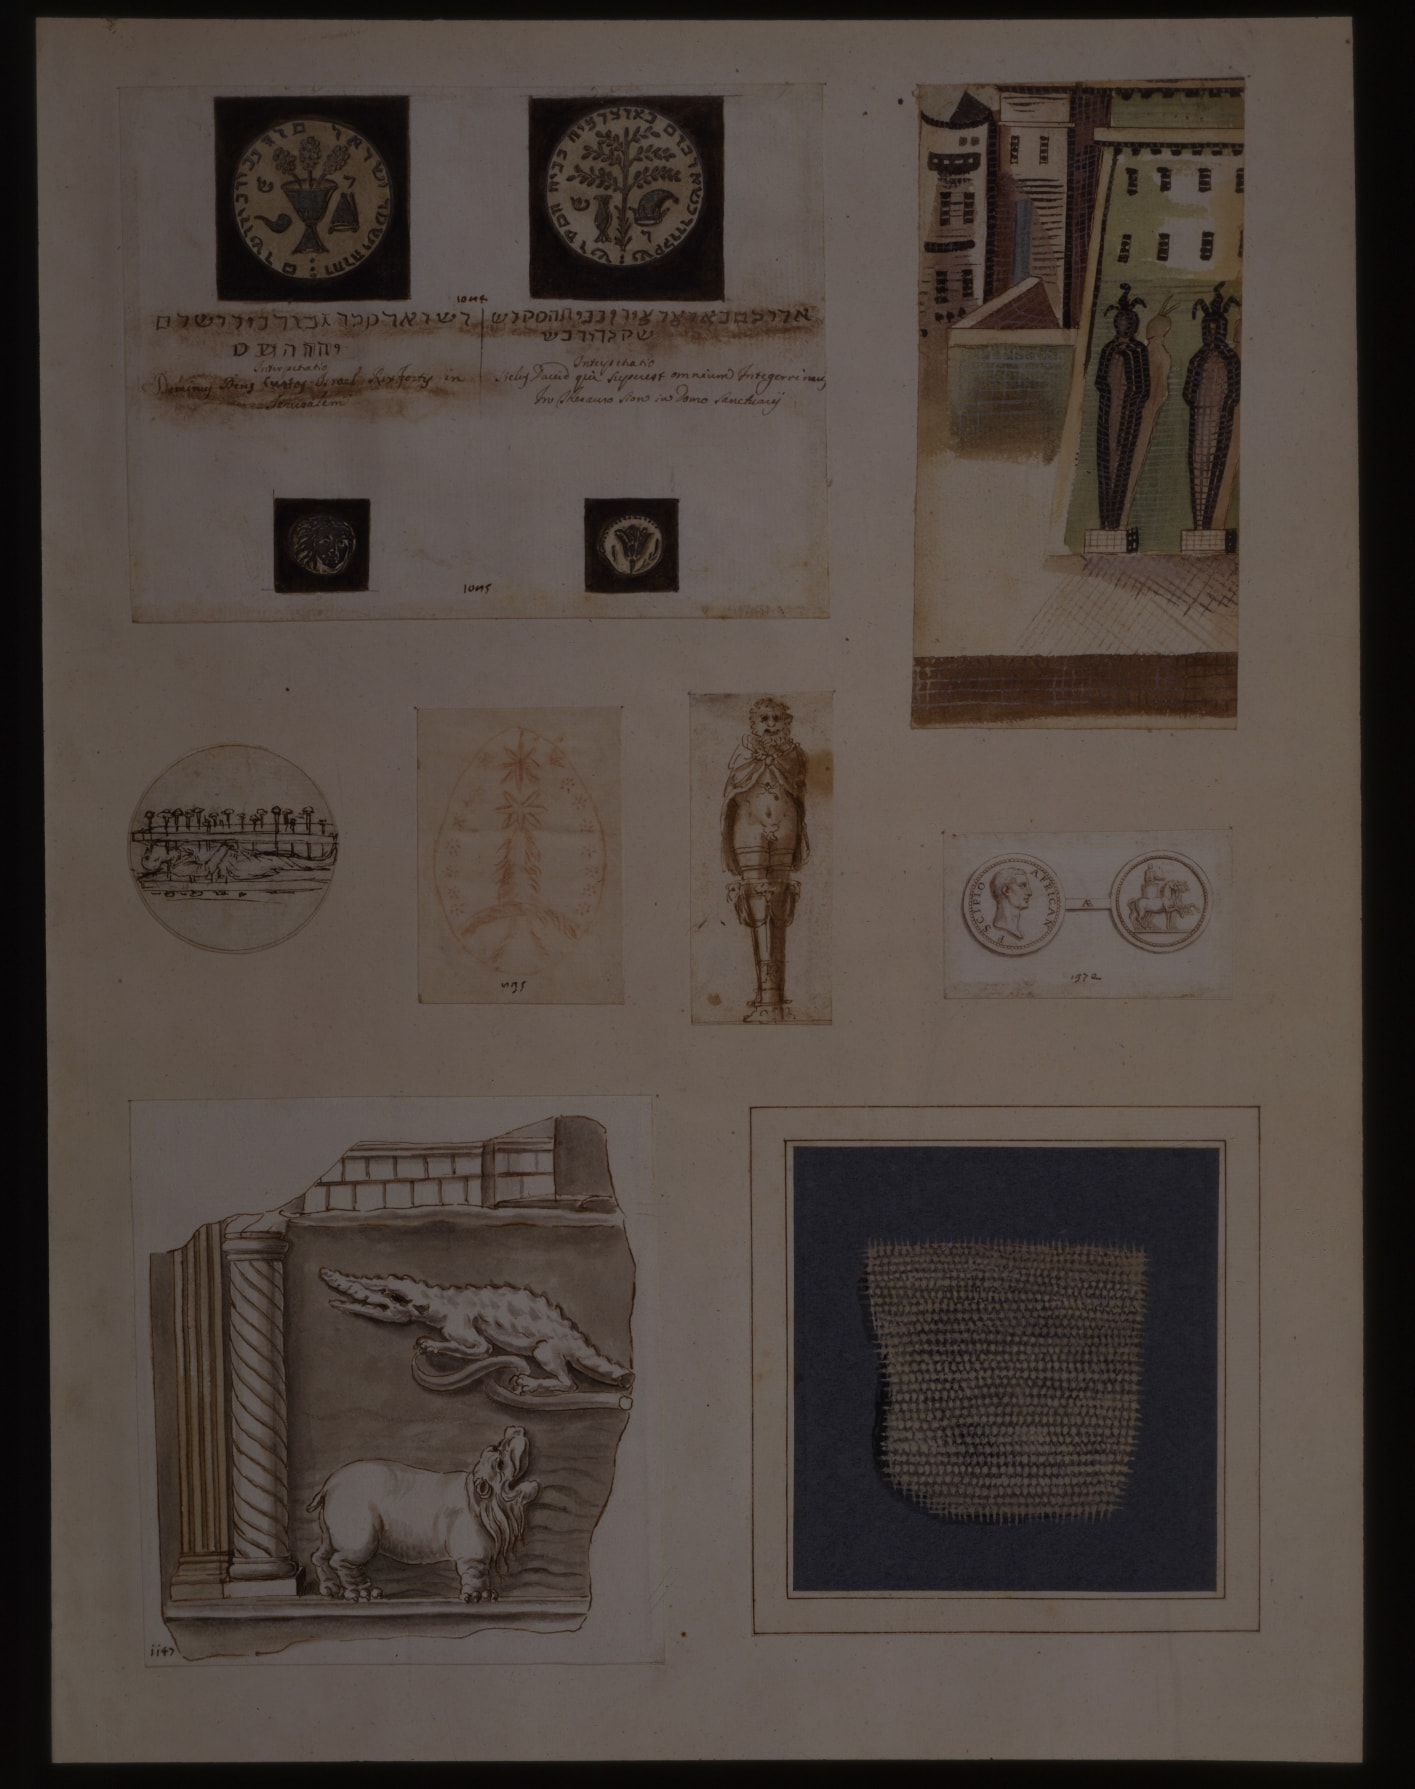 Cassiano dal Pozzo Collection – A Study After the Palestrina Mosaic: Two Mummies Before Buildings